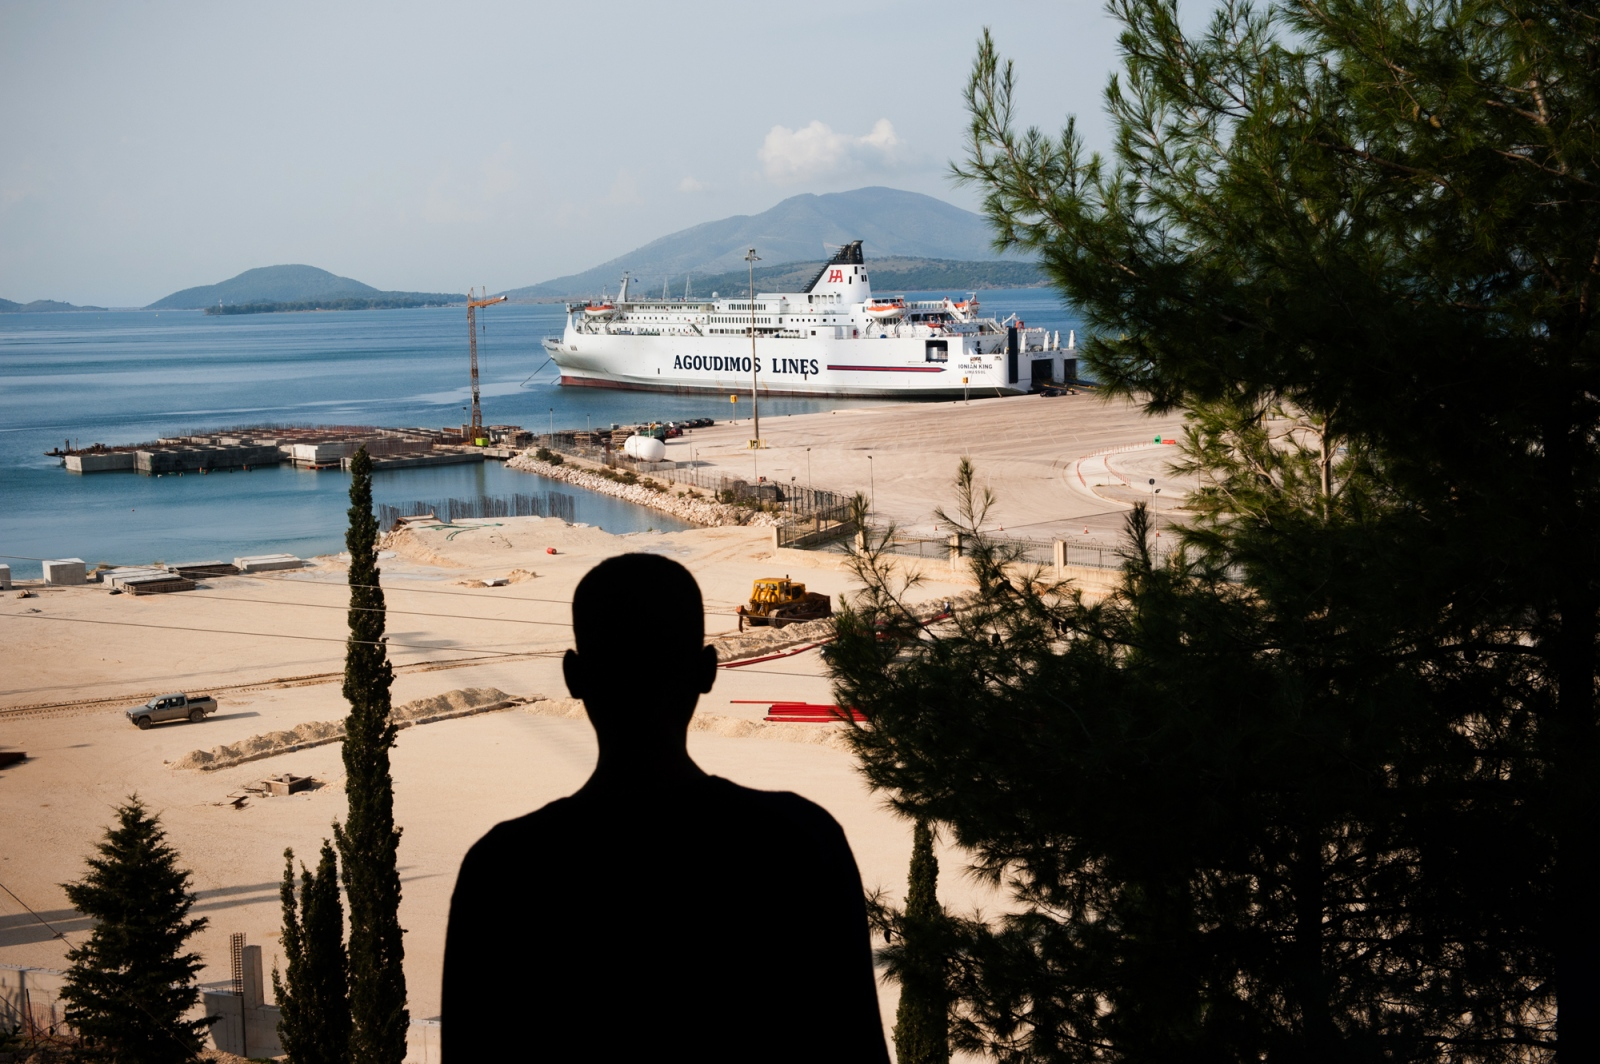 Art and Documentary Photography - Loading beilvert_erithrean_refugee_looking_at_a_ferry_boat_in_greece.jpg